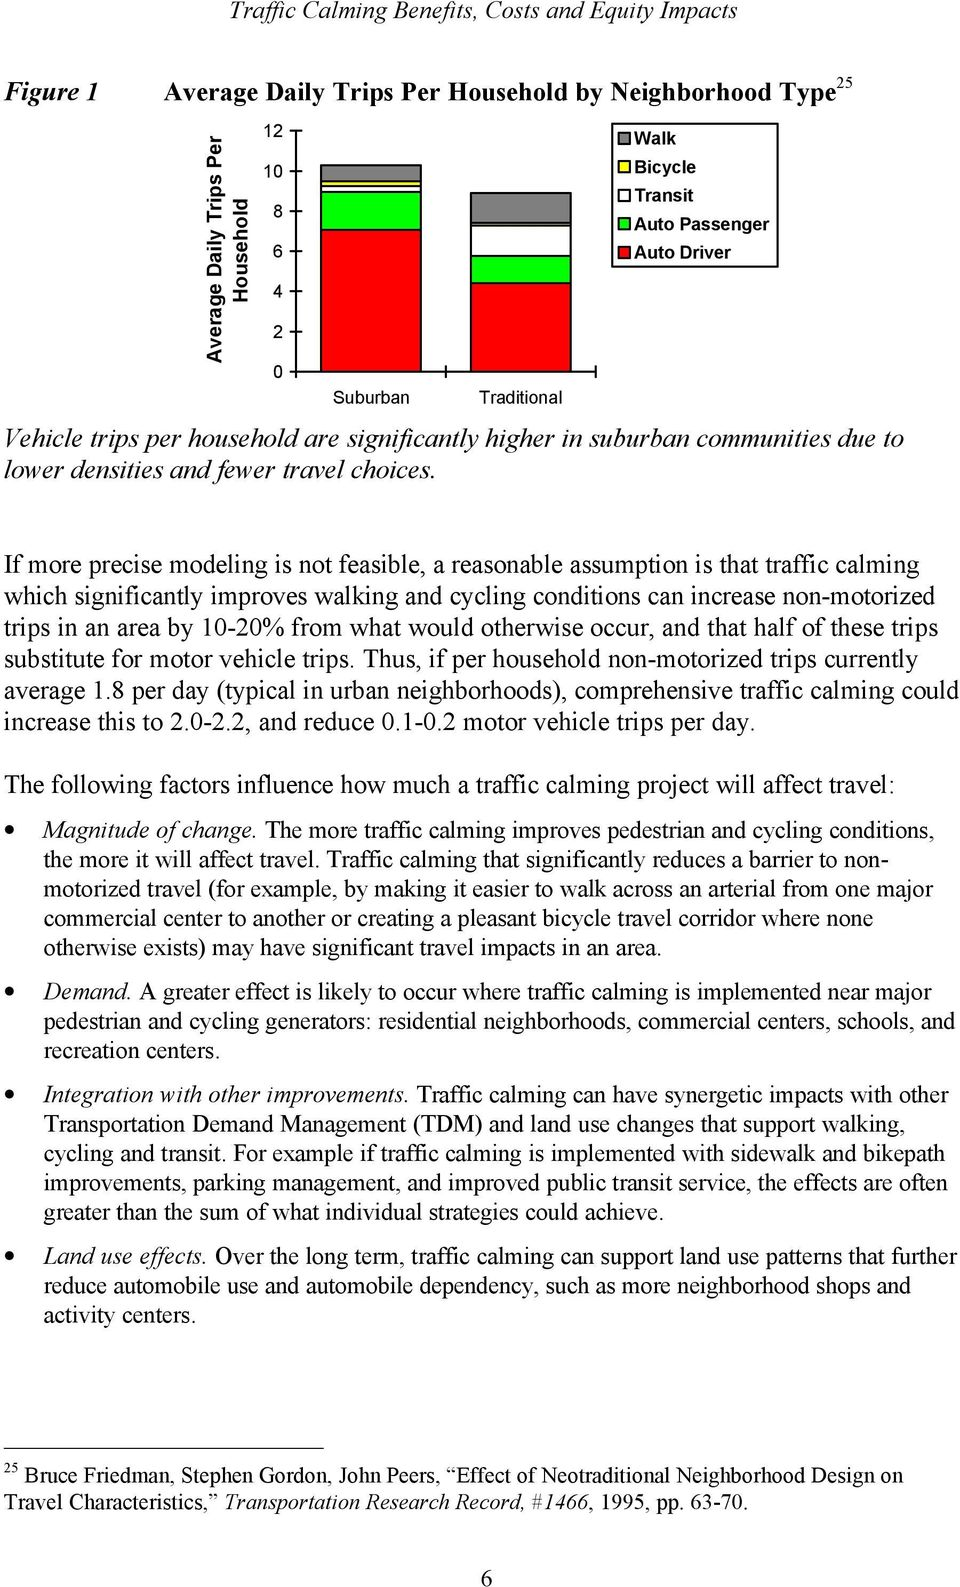 If more precise modeling is not feasible, a reasonable assumption is that traffic calming which significantly improves walking and cycling conditions can increase non-motorized trips in an area by